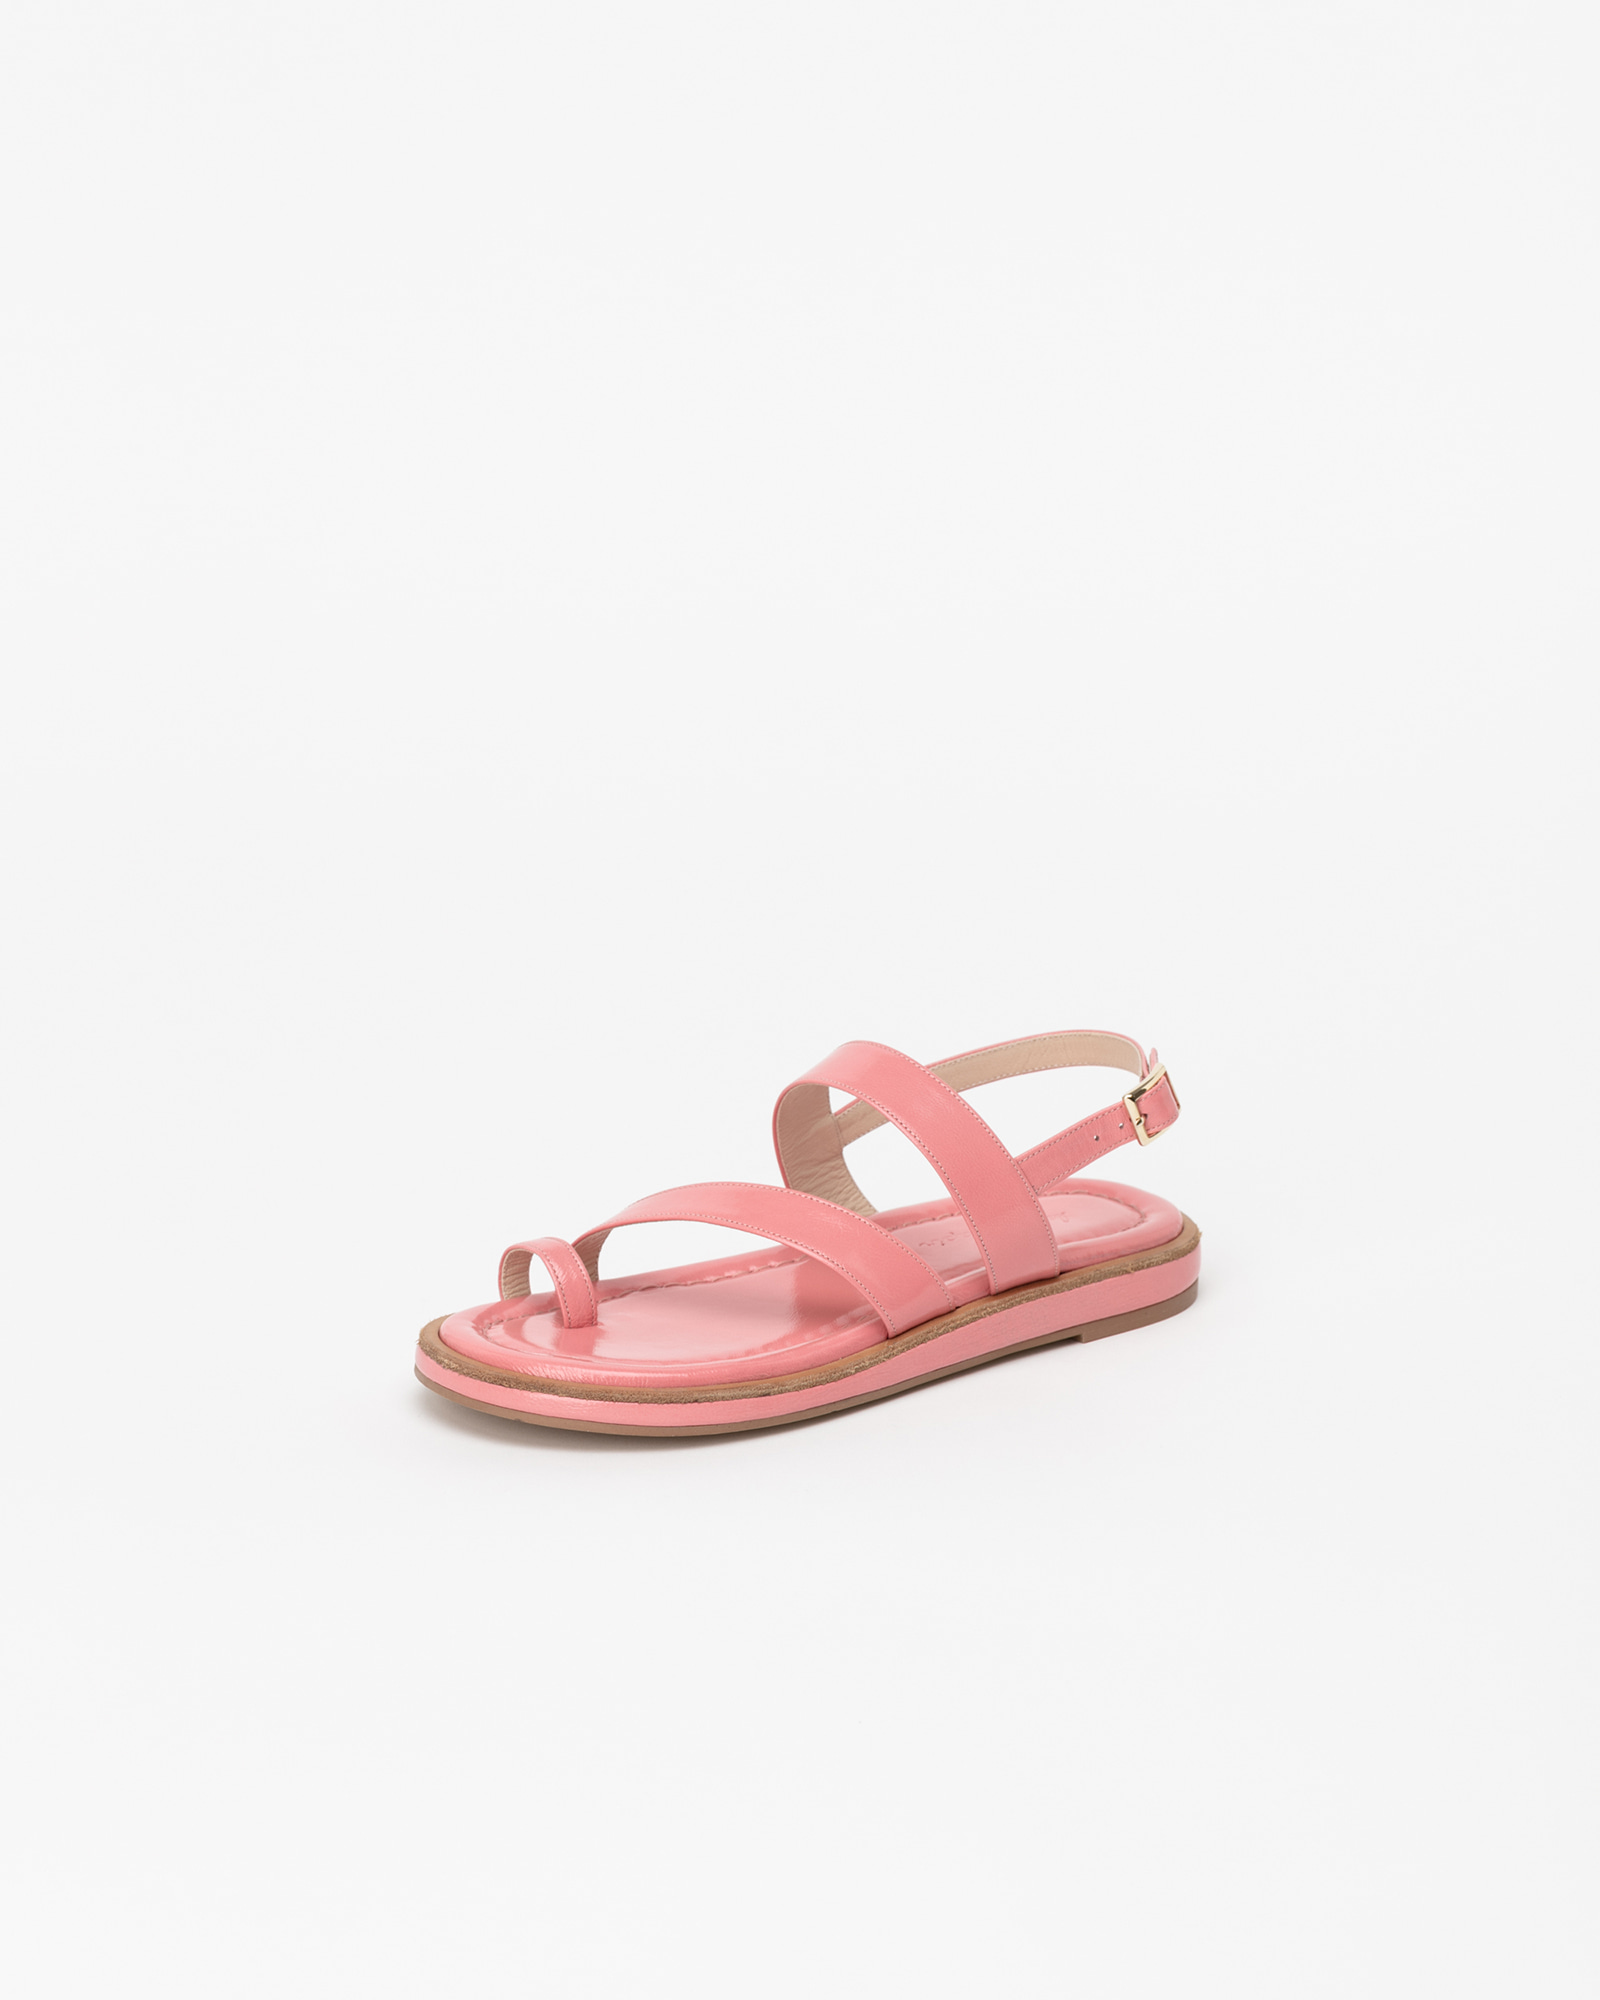 Cerise Thong Sandals in Coral Pink